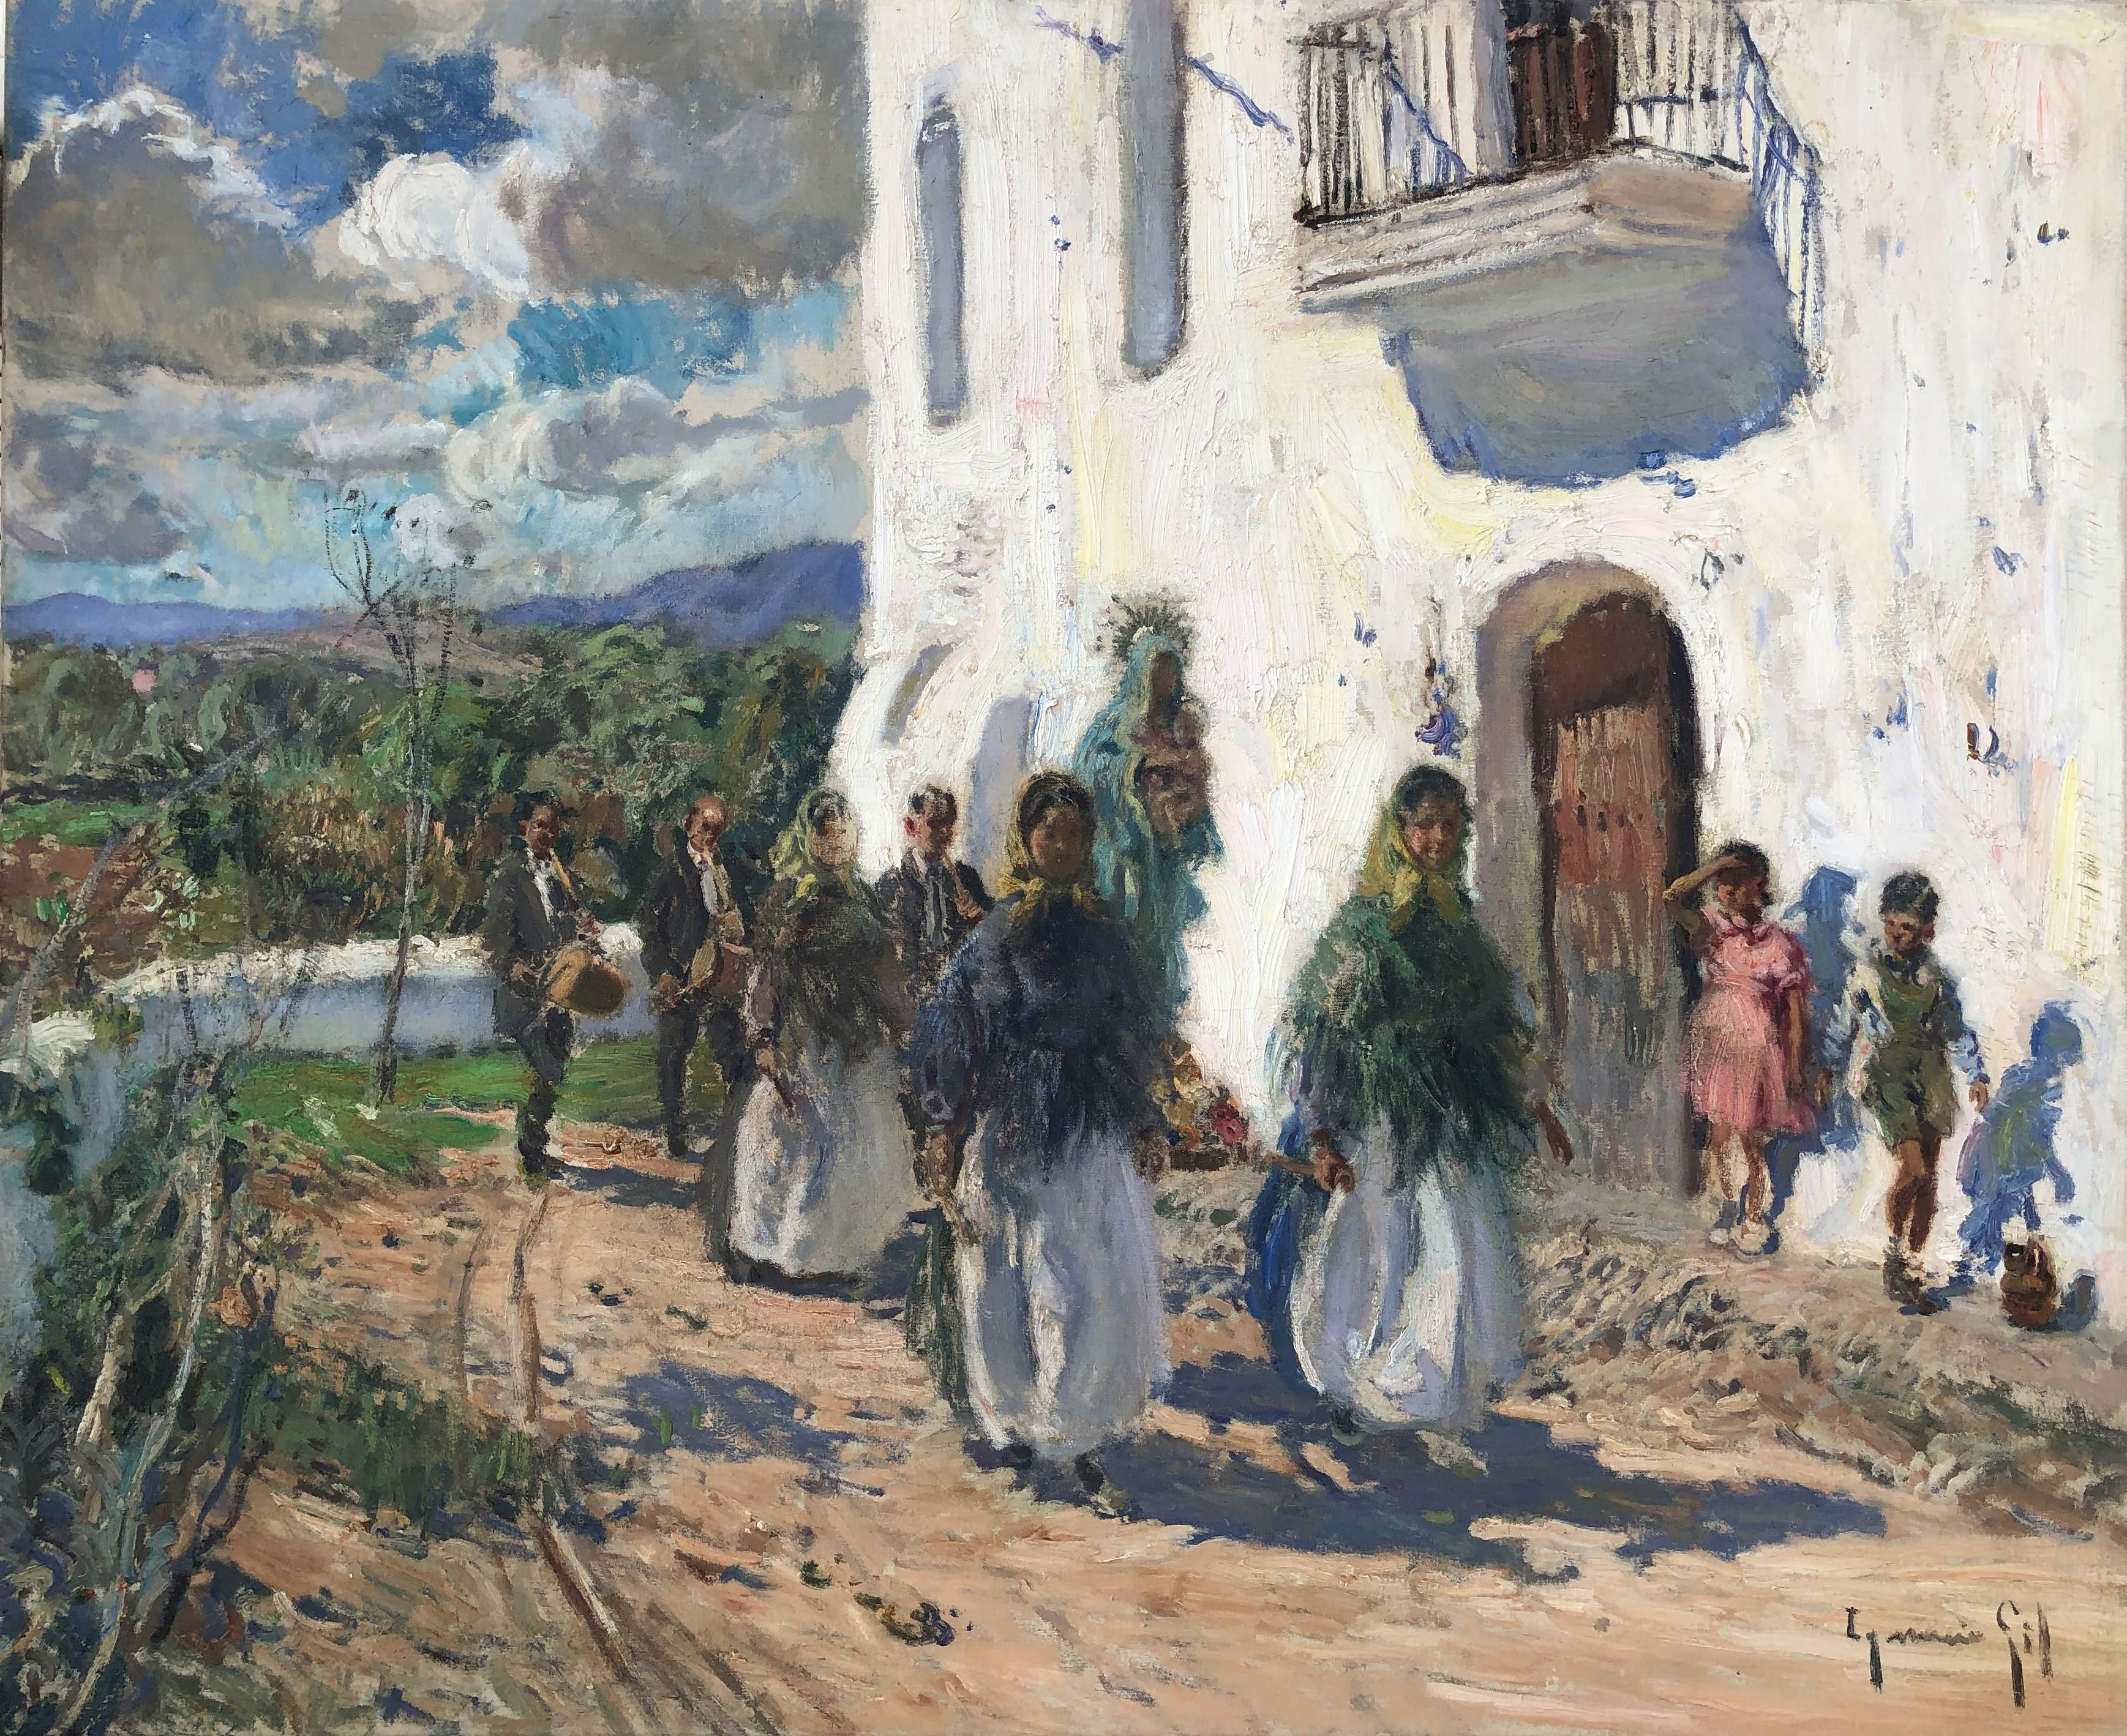 Ceremony in Ibiza Spain original oil on canvas painting